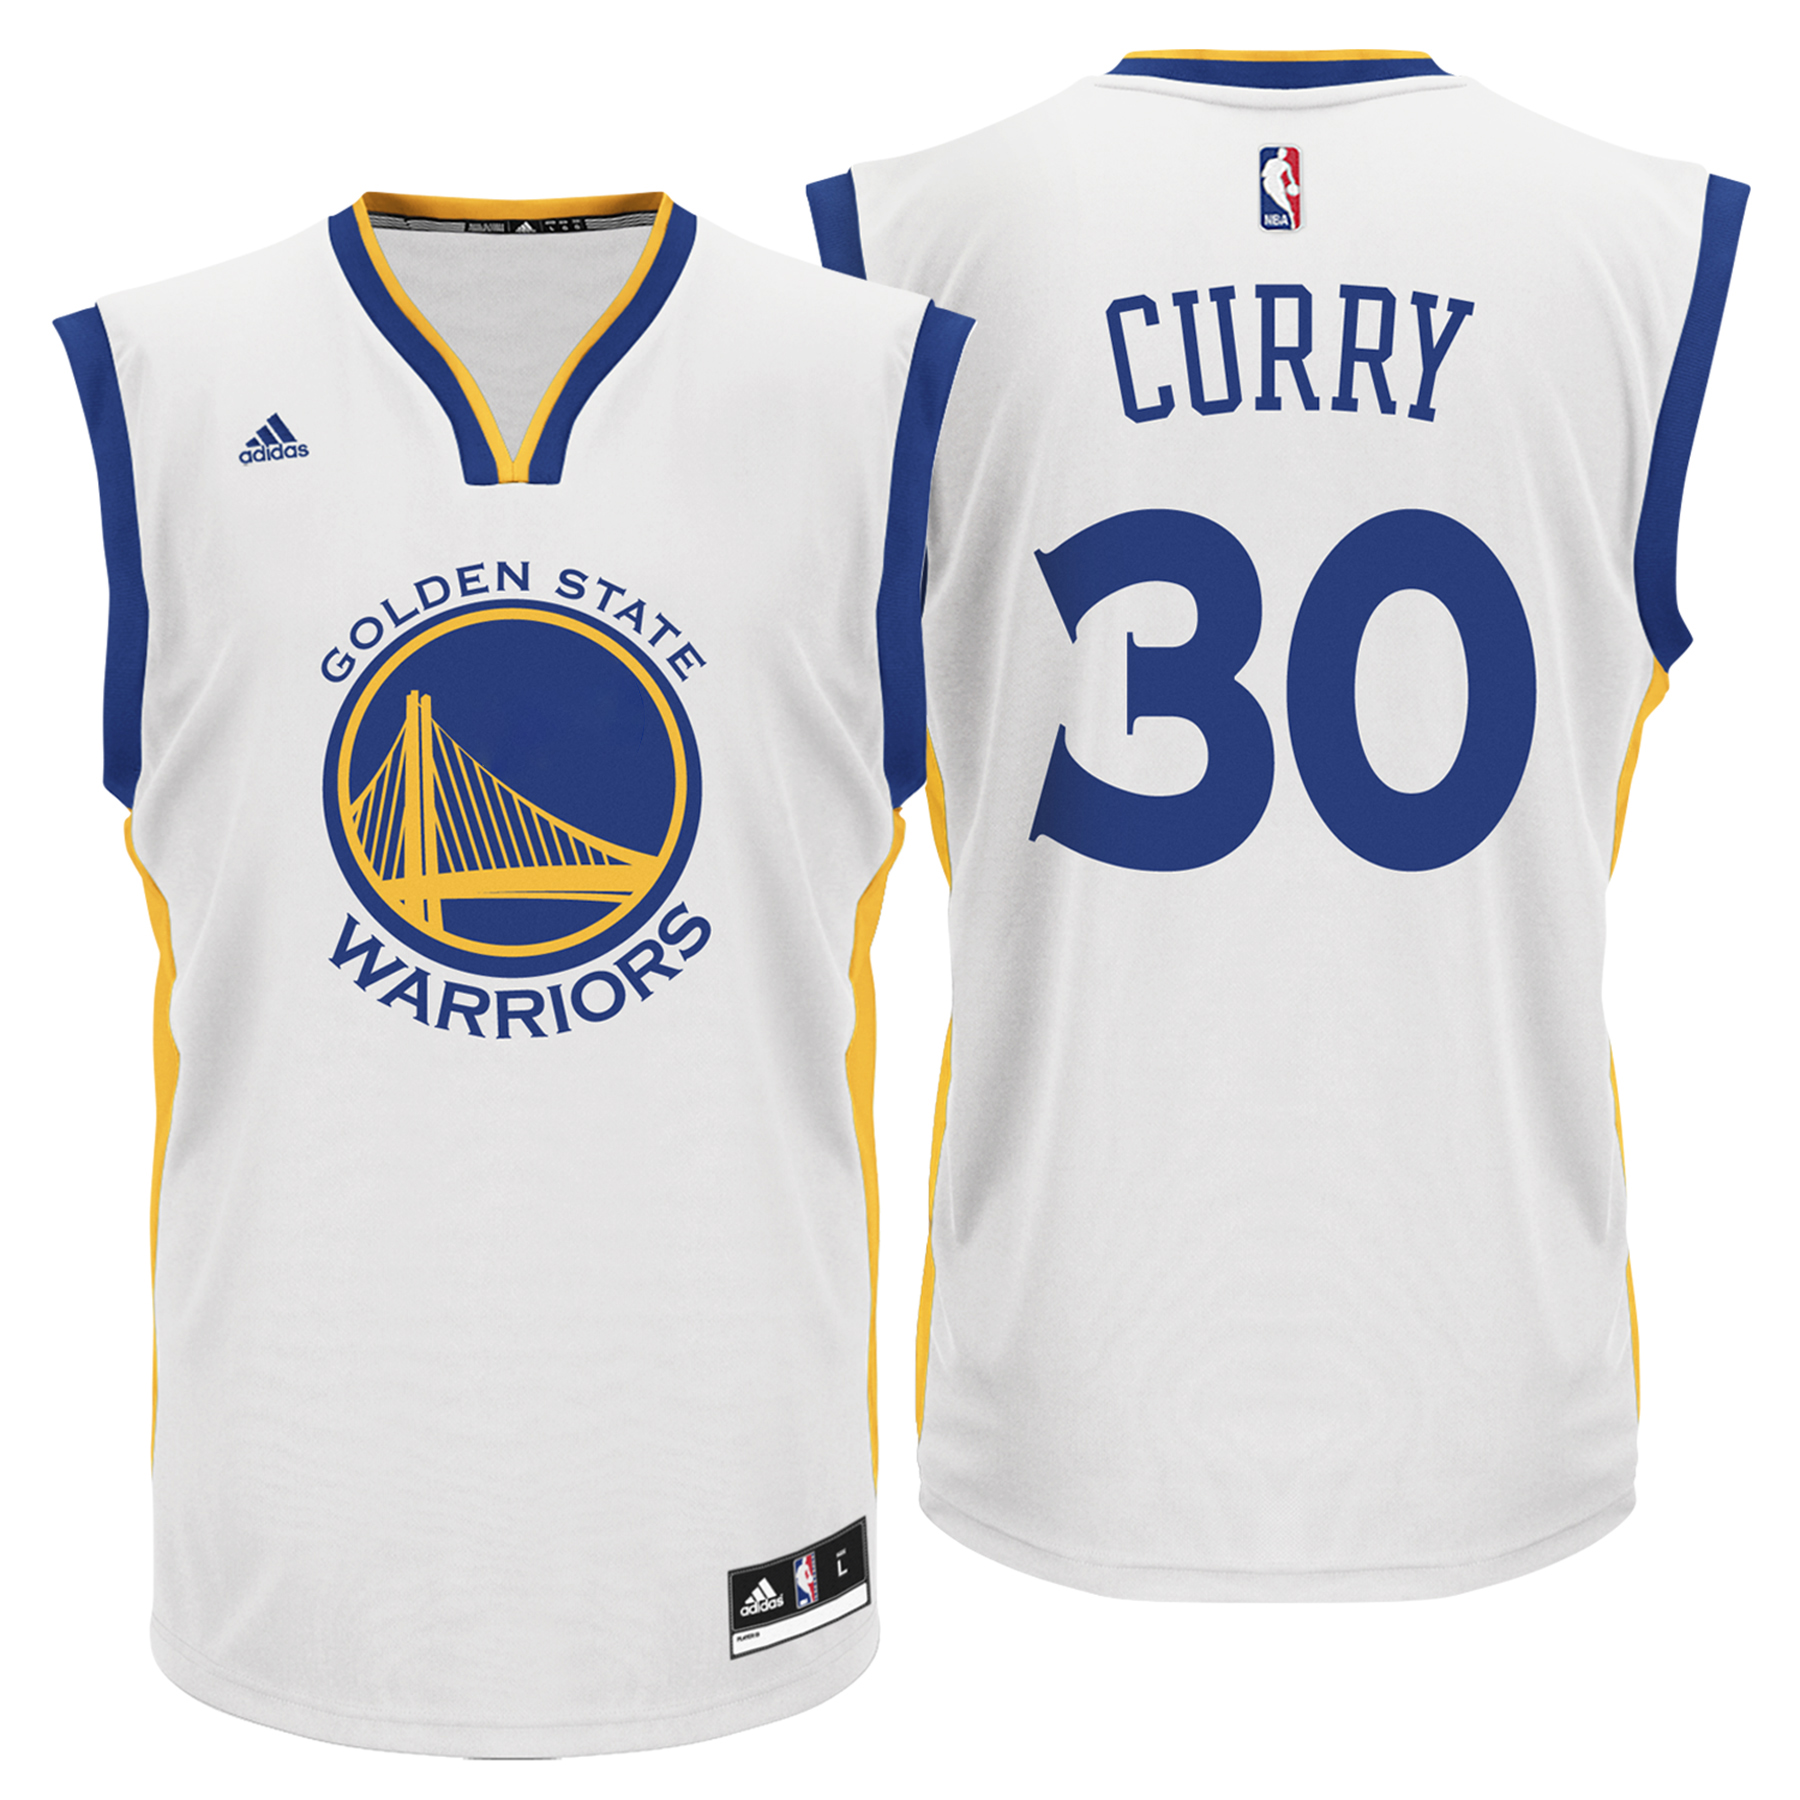 Golden State Warriors Home Replica Jersey - Stephen Curry - Mens